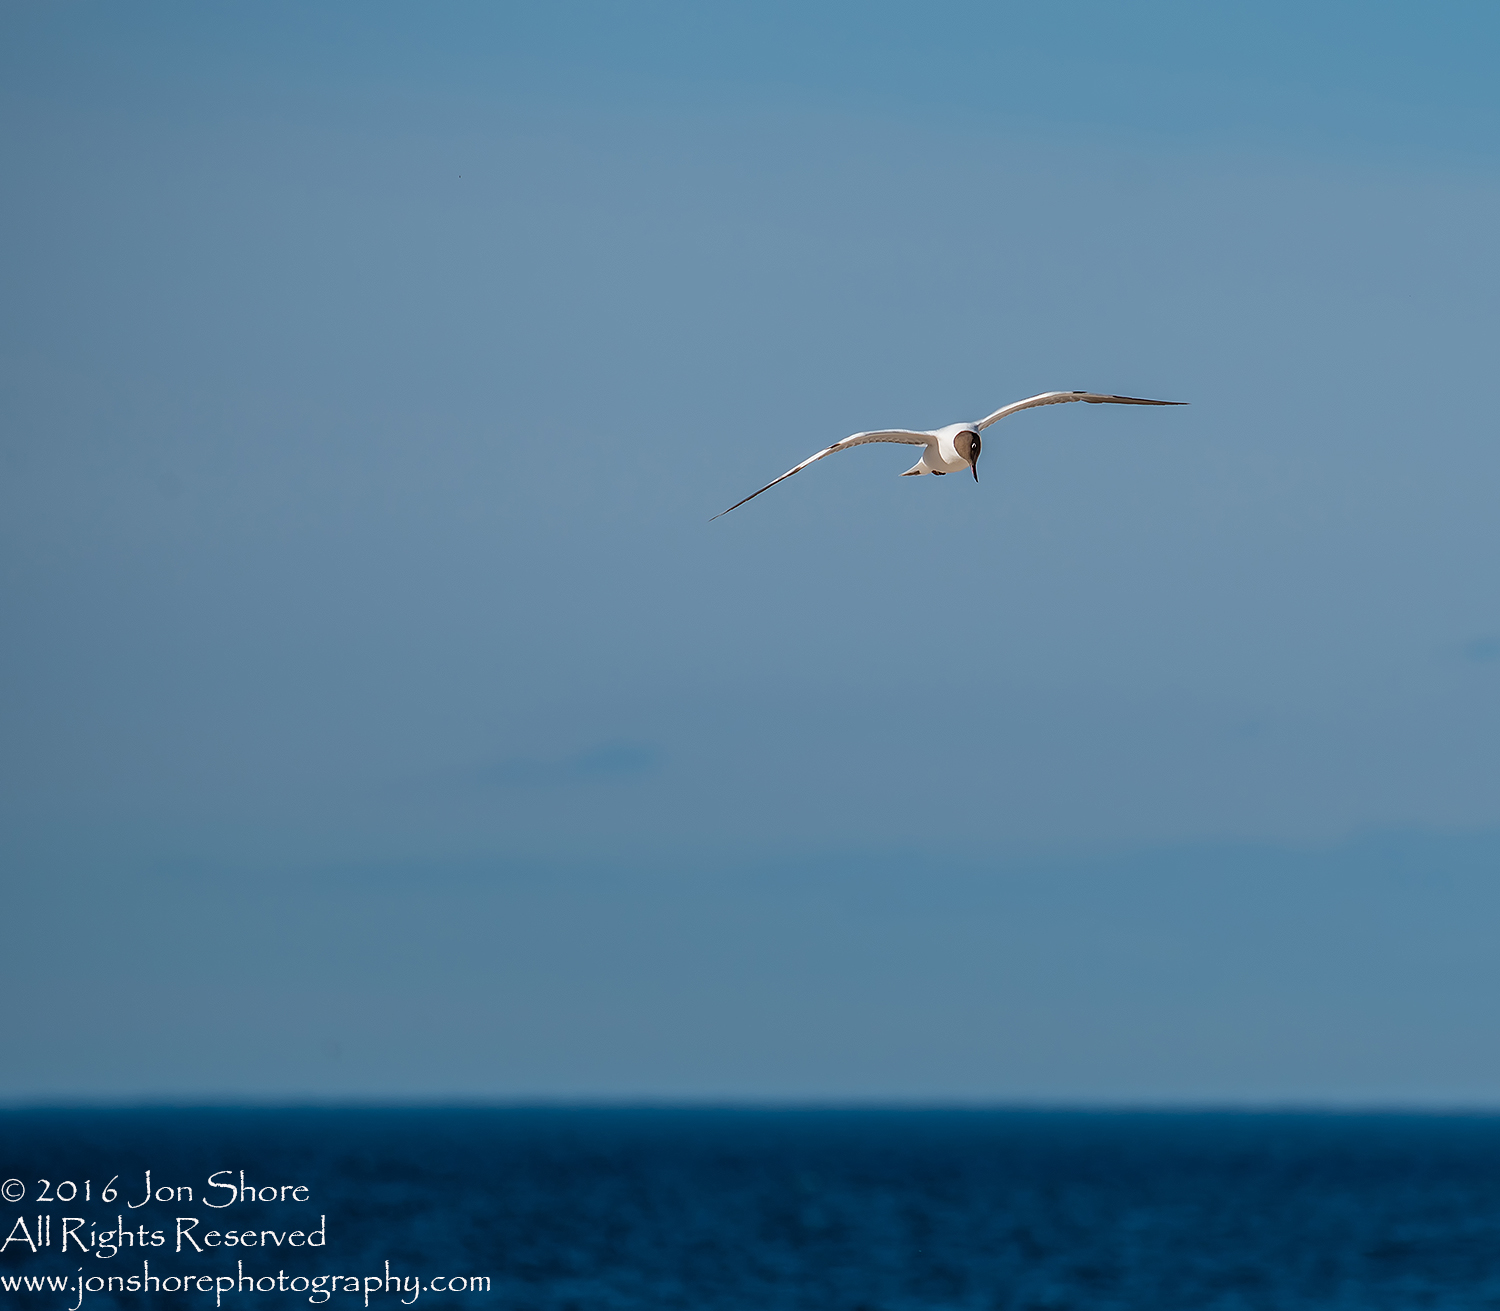 Black Headed Seagull flying over Baltic Sea. Tamron 300mm